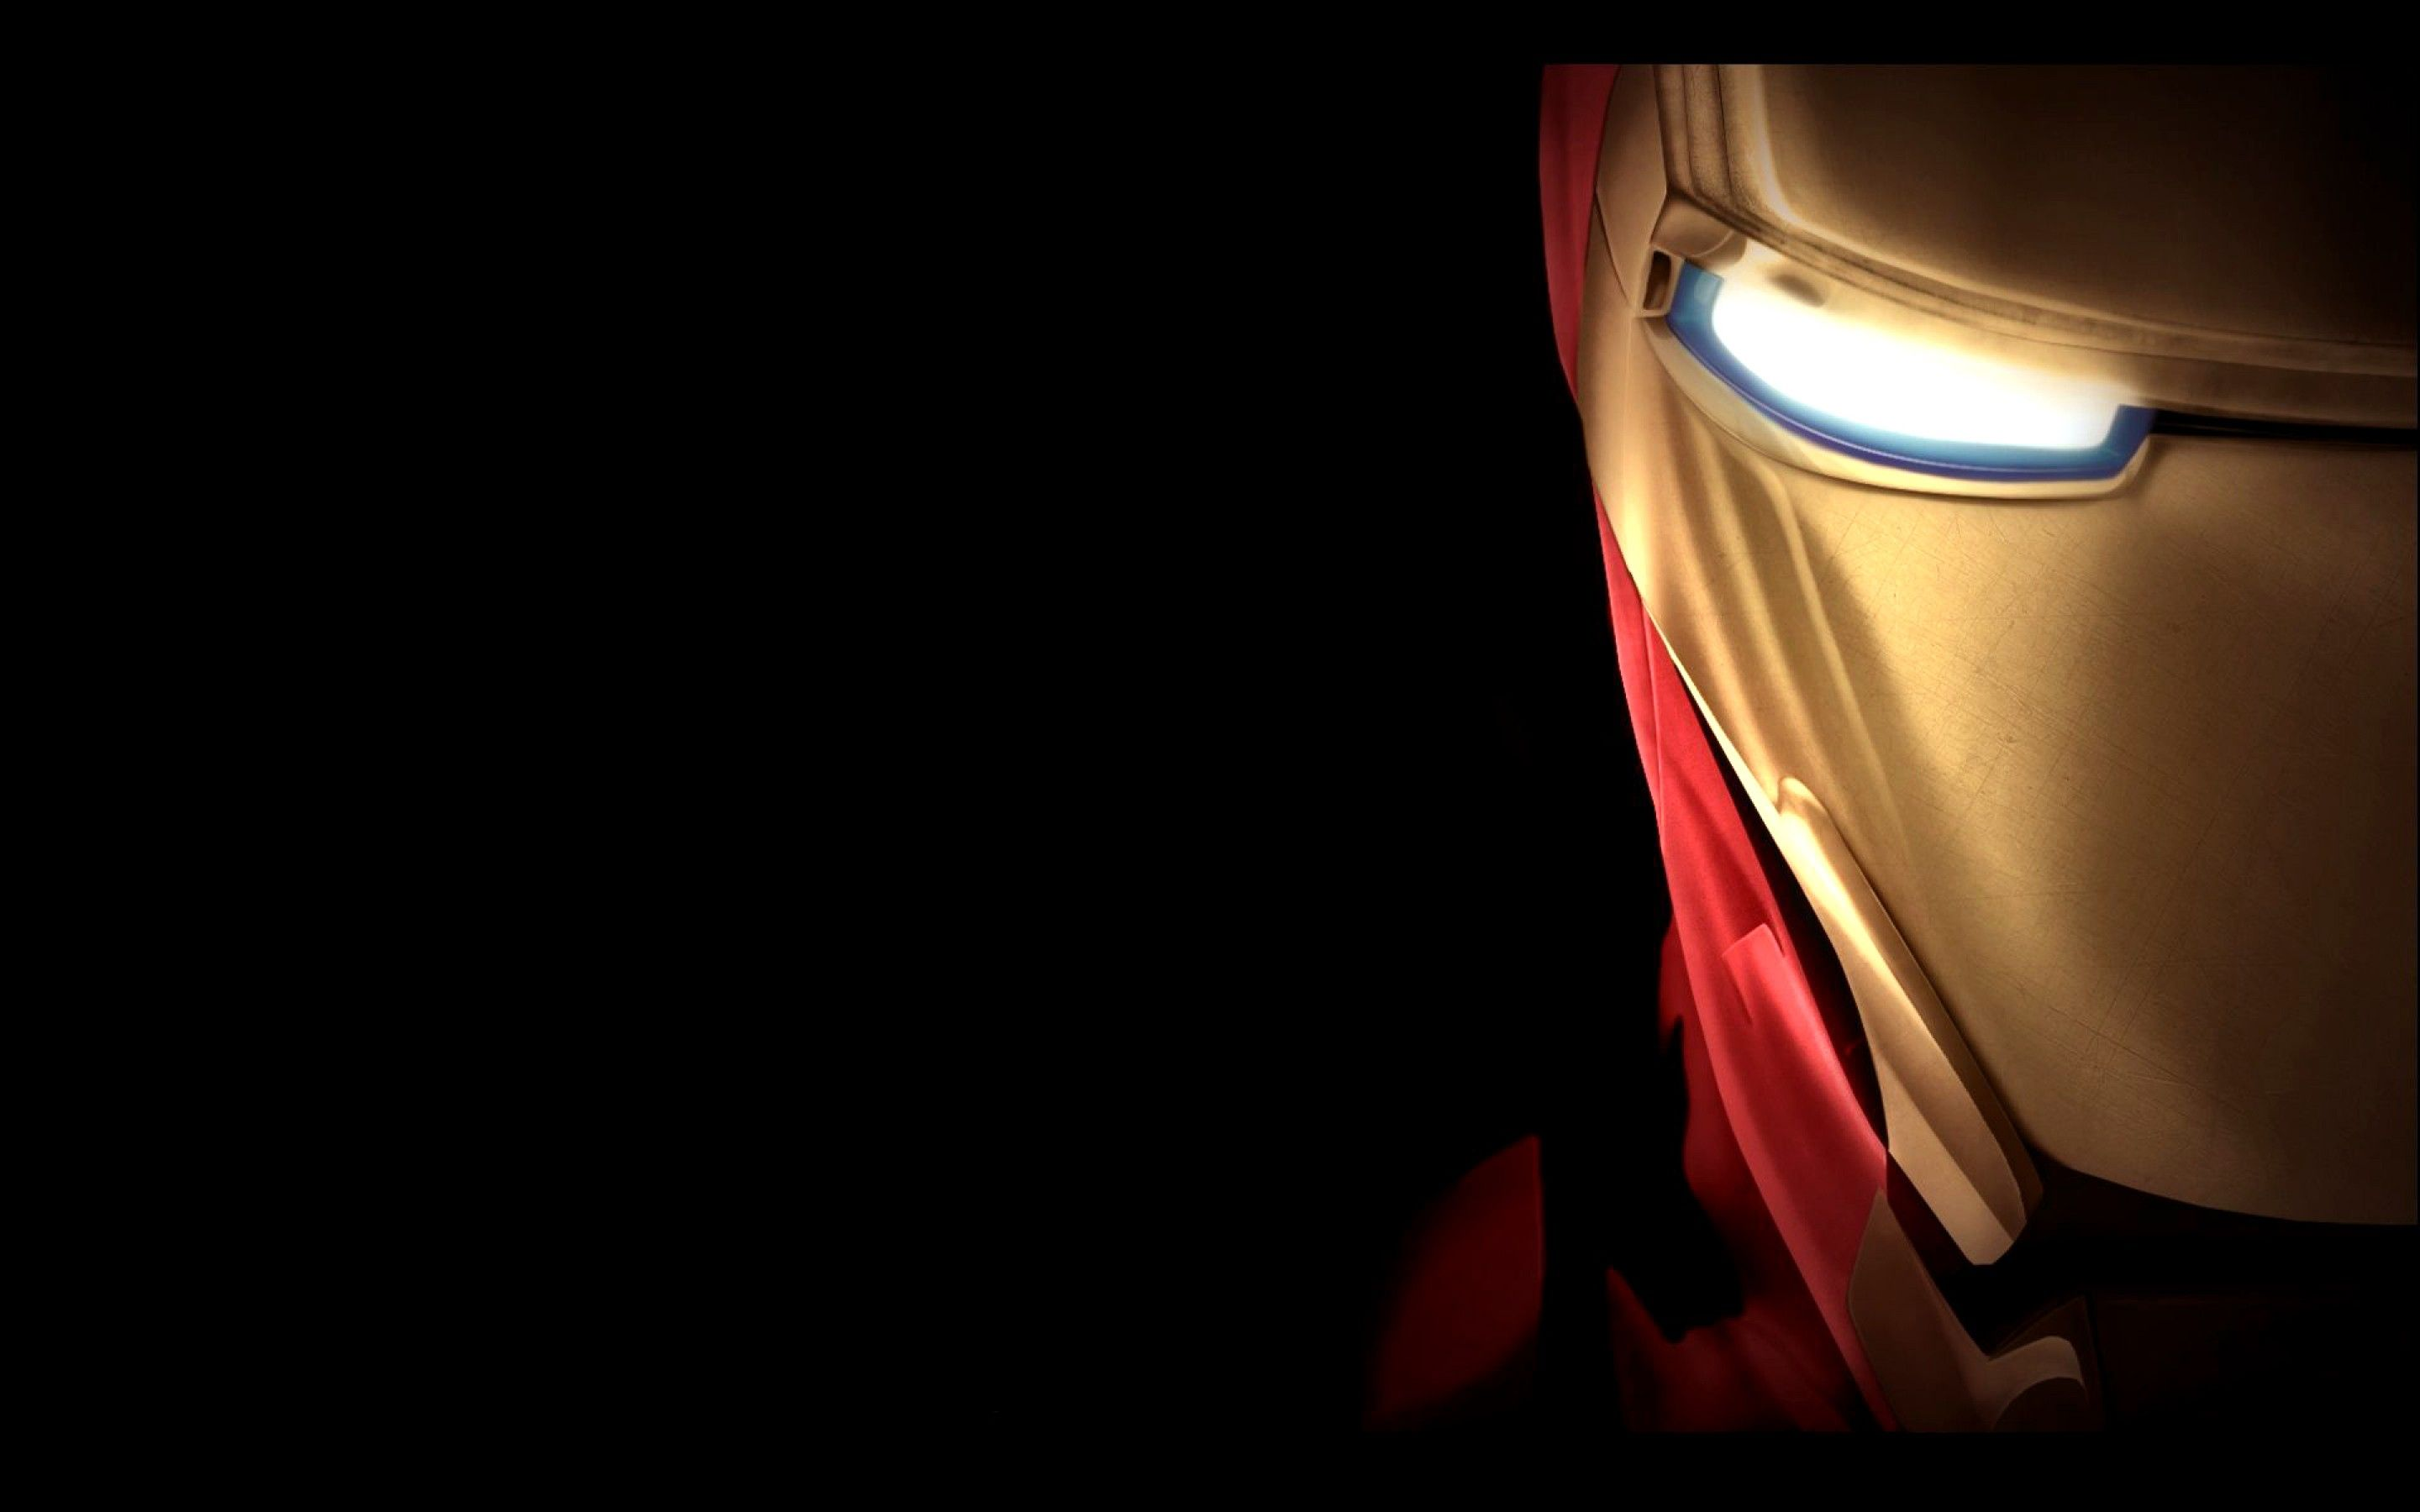 Cool Wallpaper With Iron Man Mask Face Image In Close Up And Dark Background Hd Wallpapers Wallpapers Download High Resolution Wallpapers Iron Man Wallpaper Iron Man Hd Wallpaper Man Wallpaper